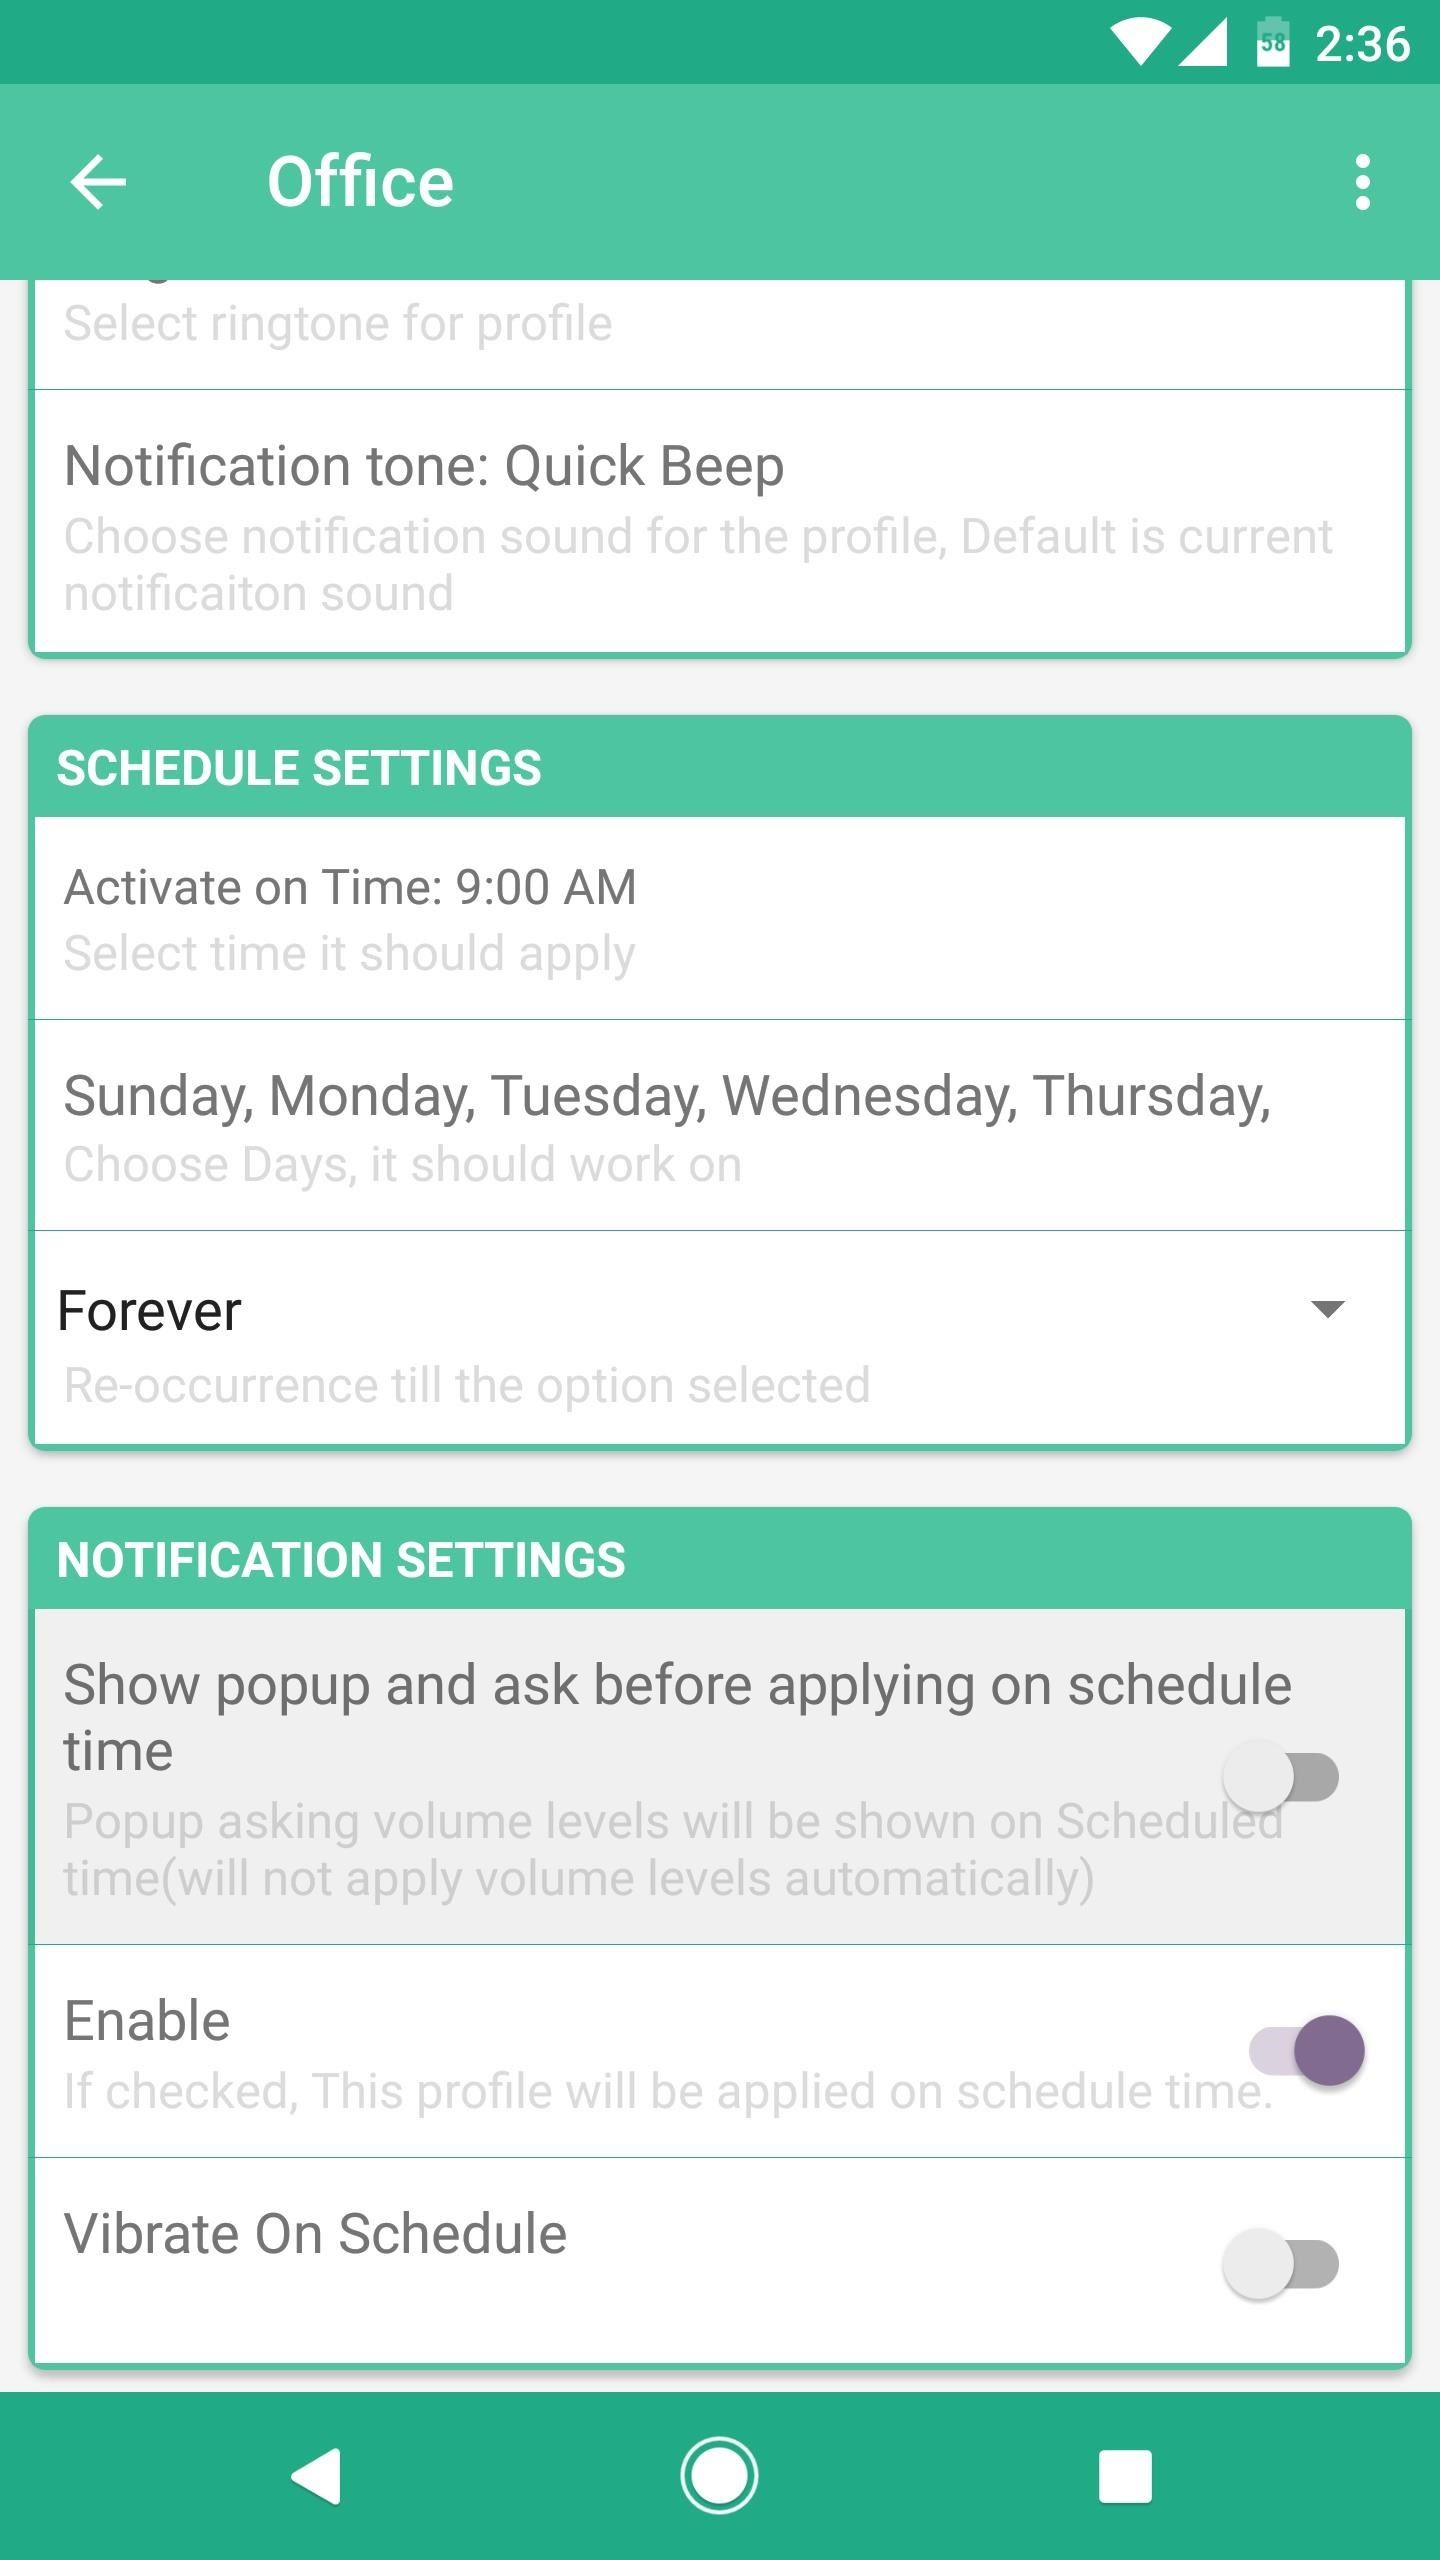 How To Set Volume Levels To Change During Scheduled Times On Android Android Gadget Hacks